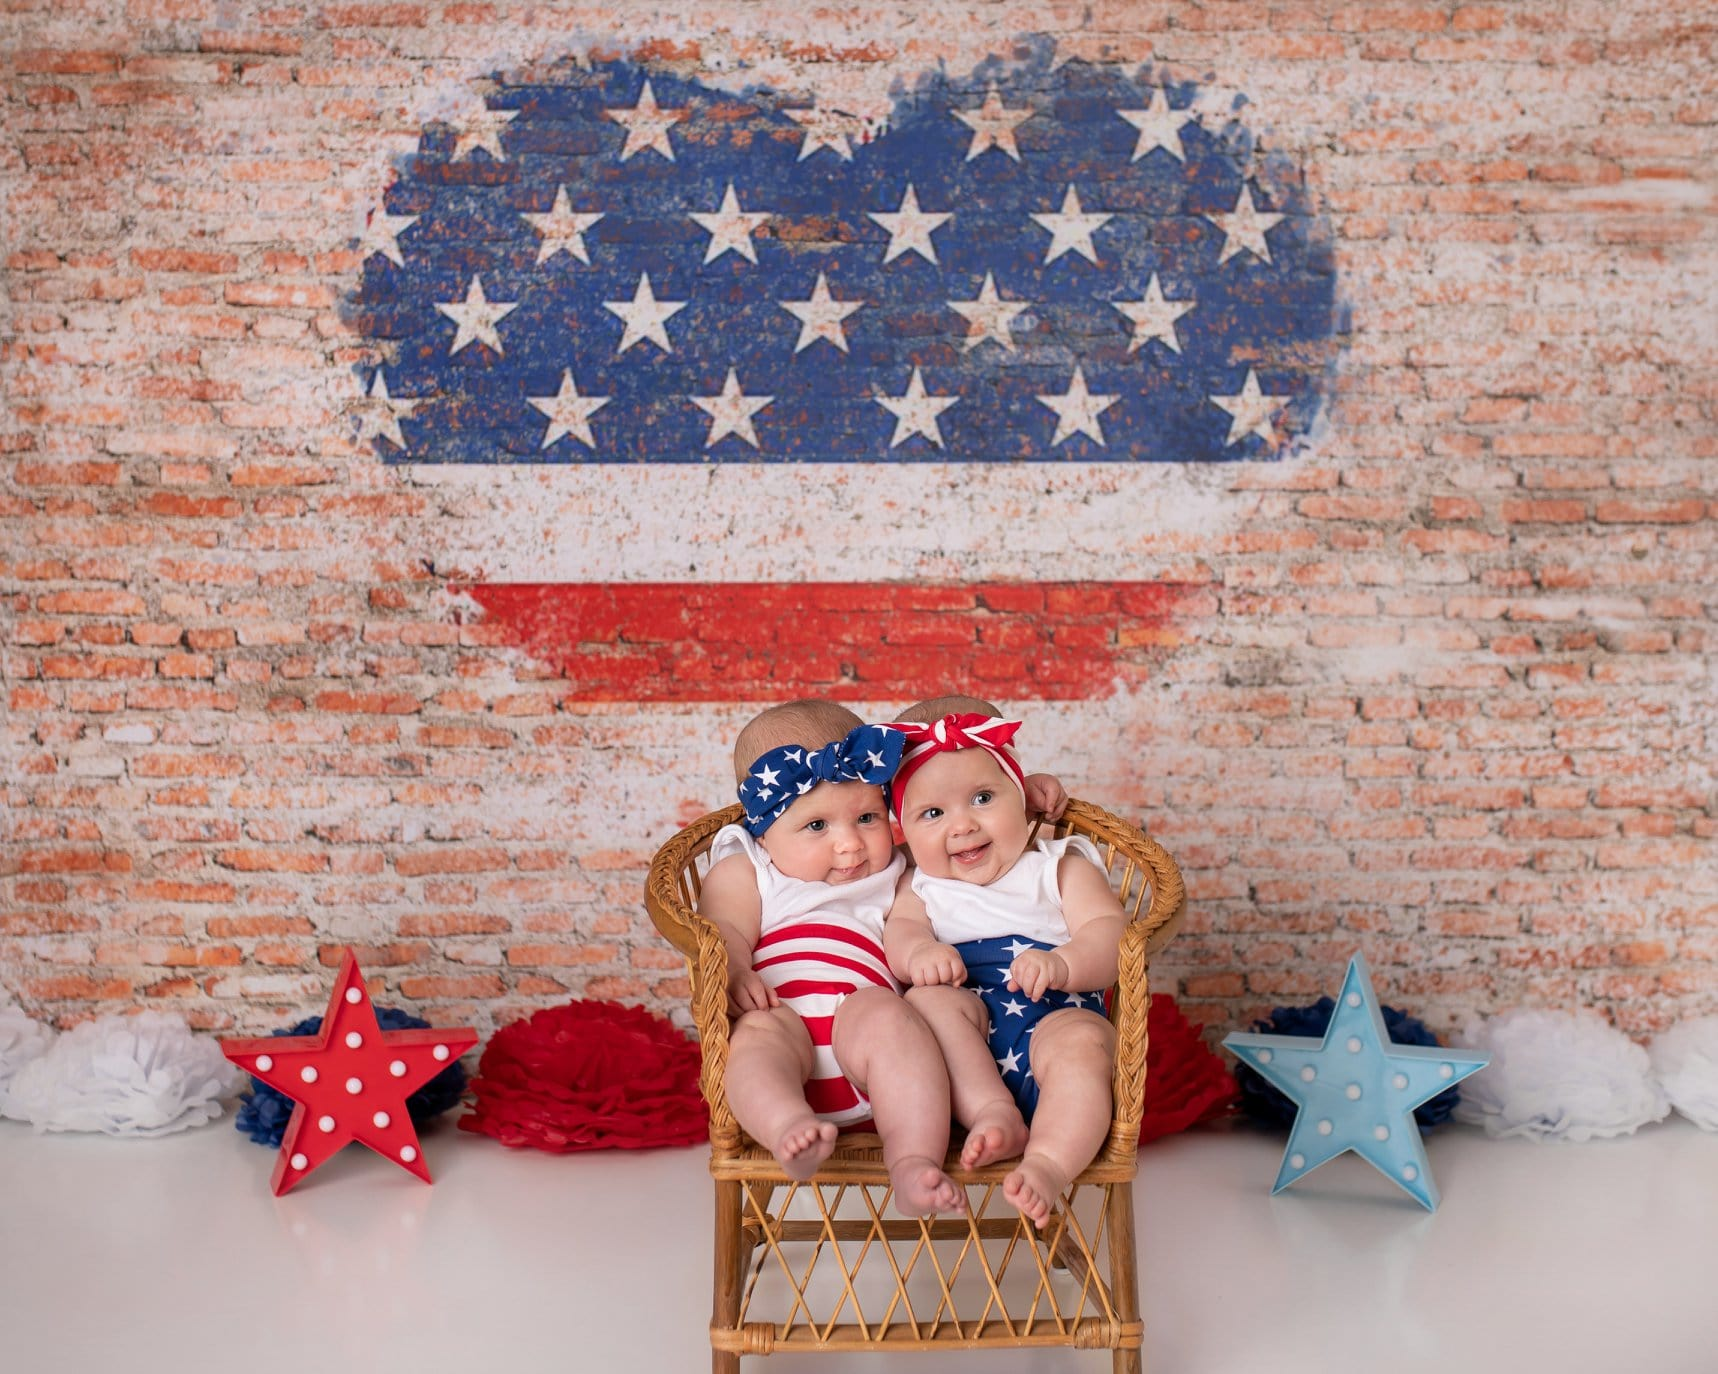 Load image into Gallery viewer, Kate Heart US Flag Brick Backdrop Designed by Jia Chan Photography